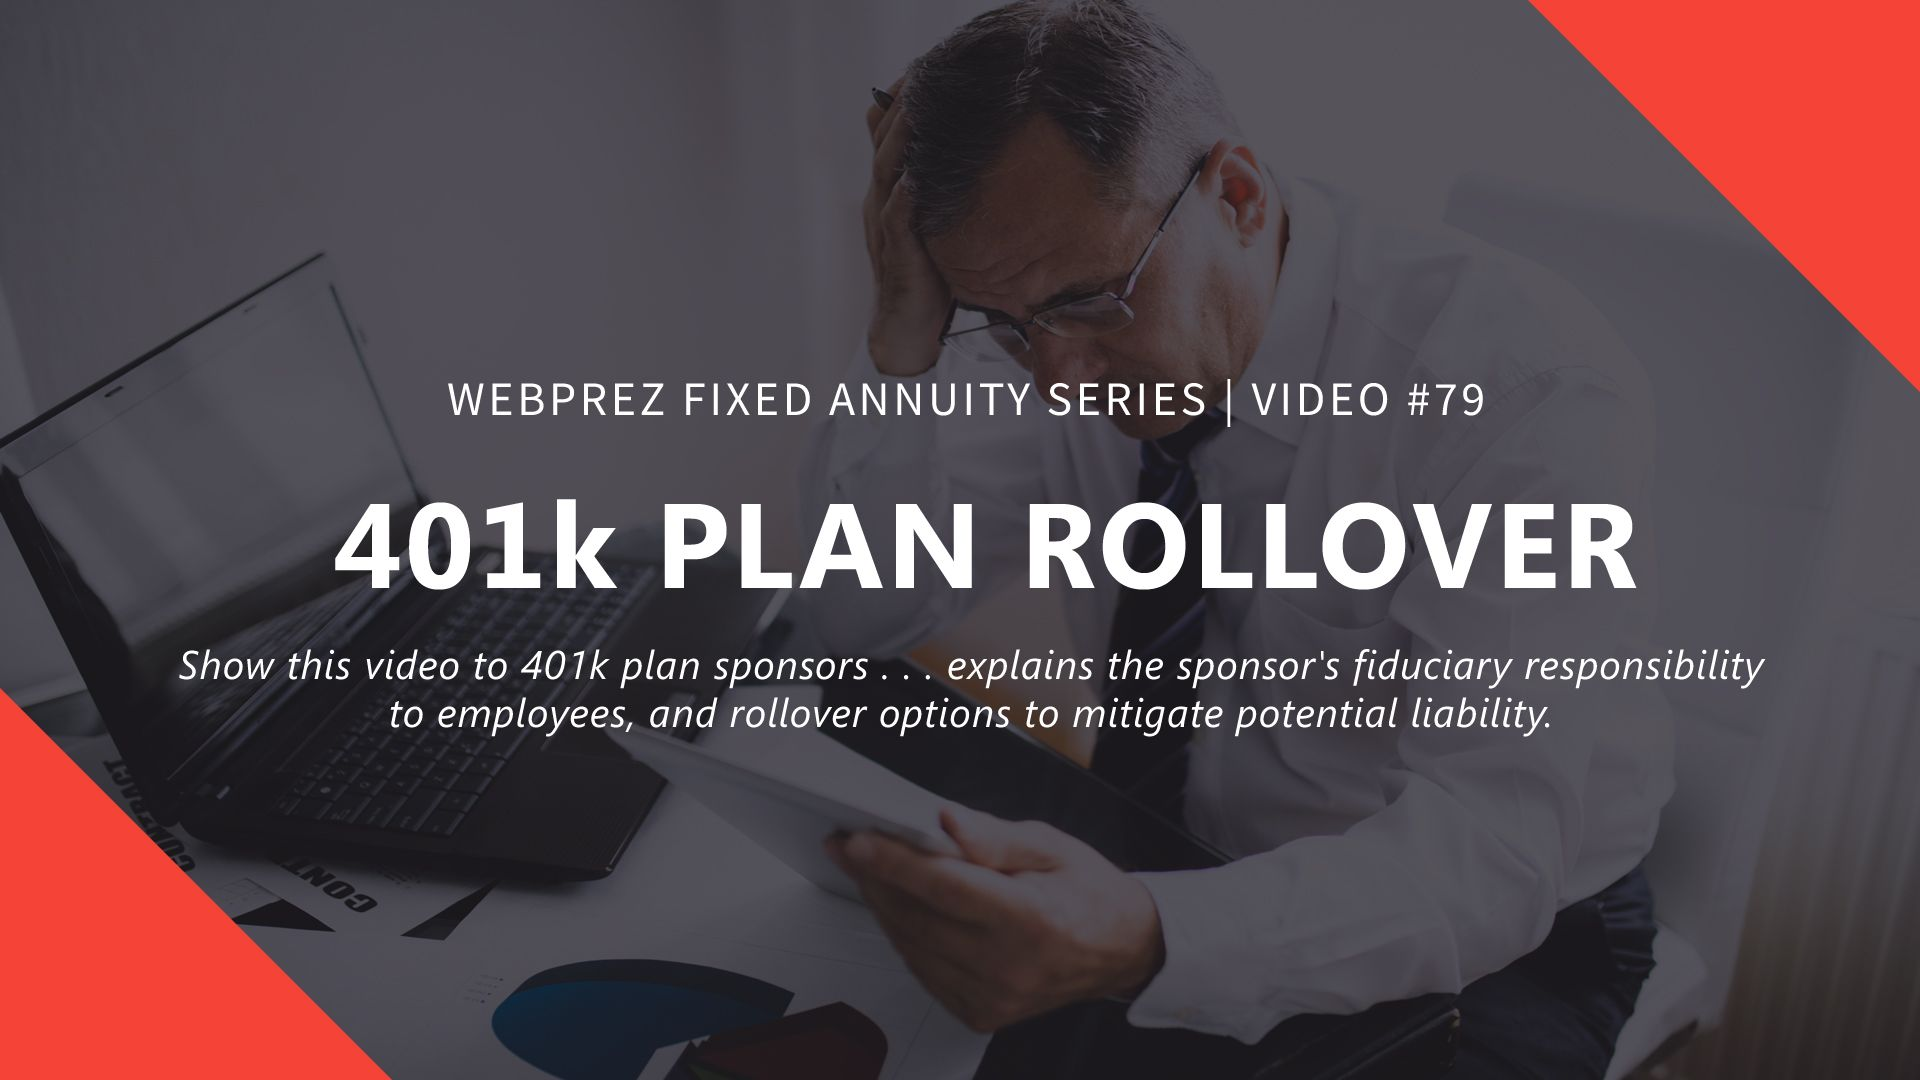 401k plan rollovers email marketing system how to plan